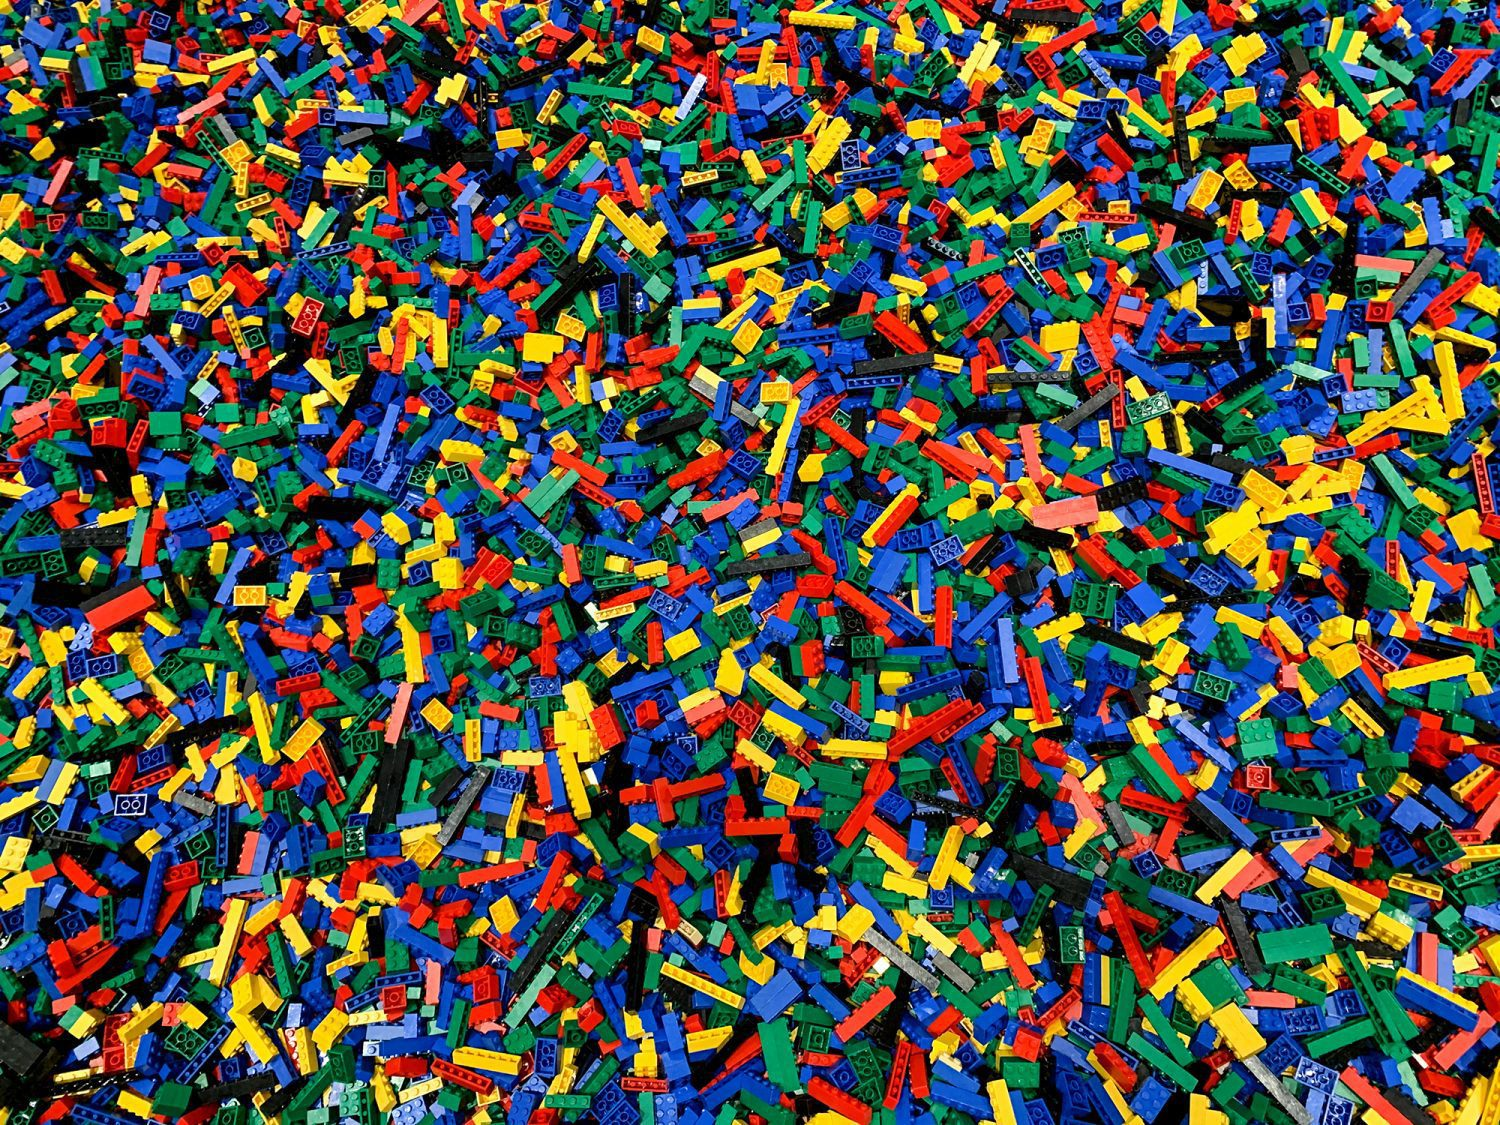 a huge container filled with legos